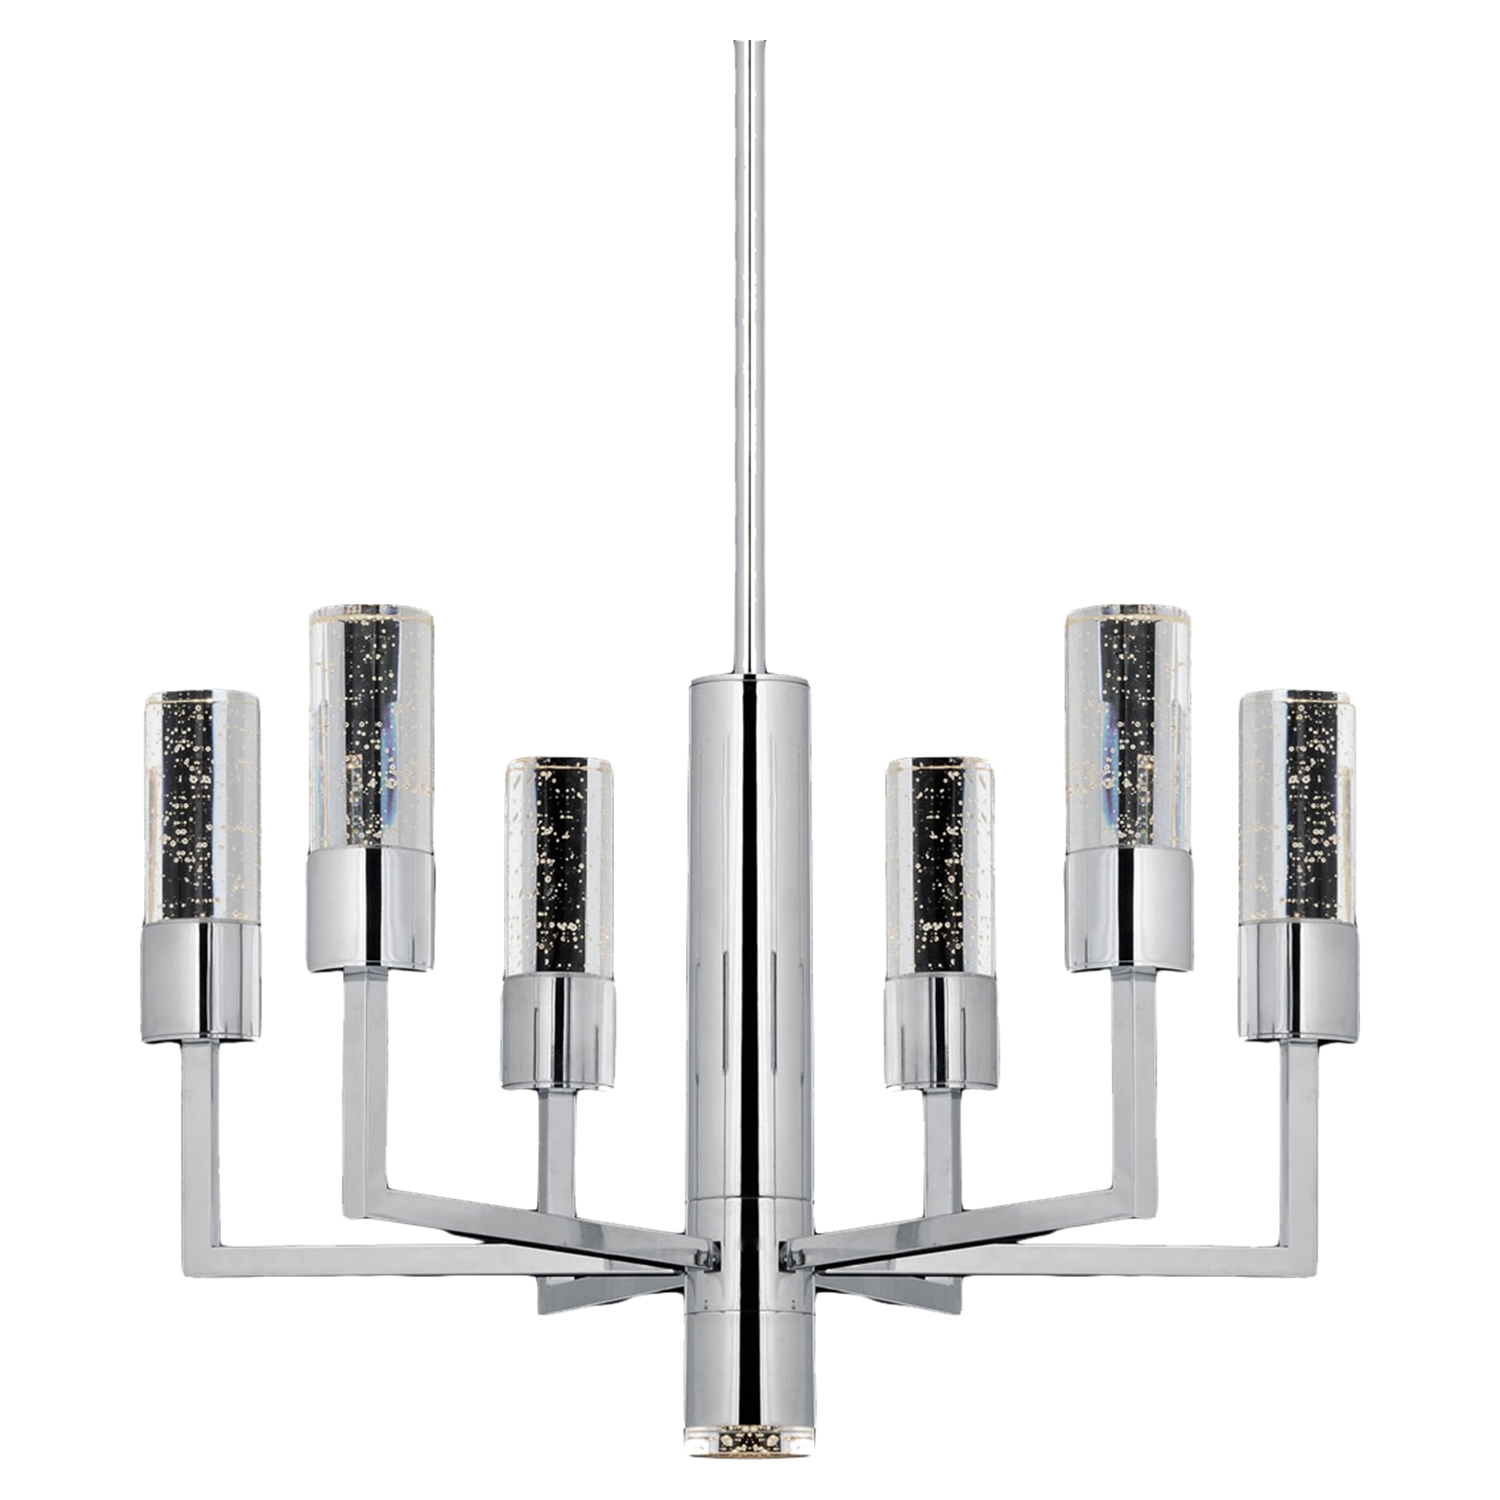 Talon 7-Light Round Pendant - Chrome Finish, Modern - BROM-B2706